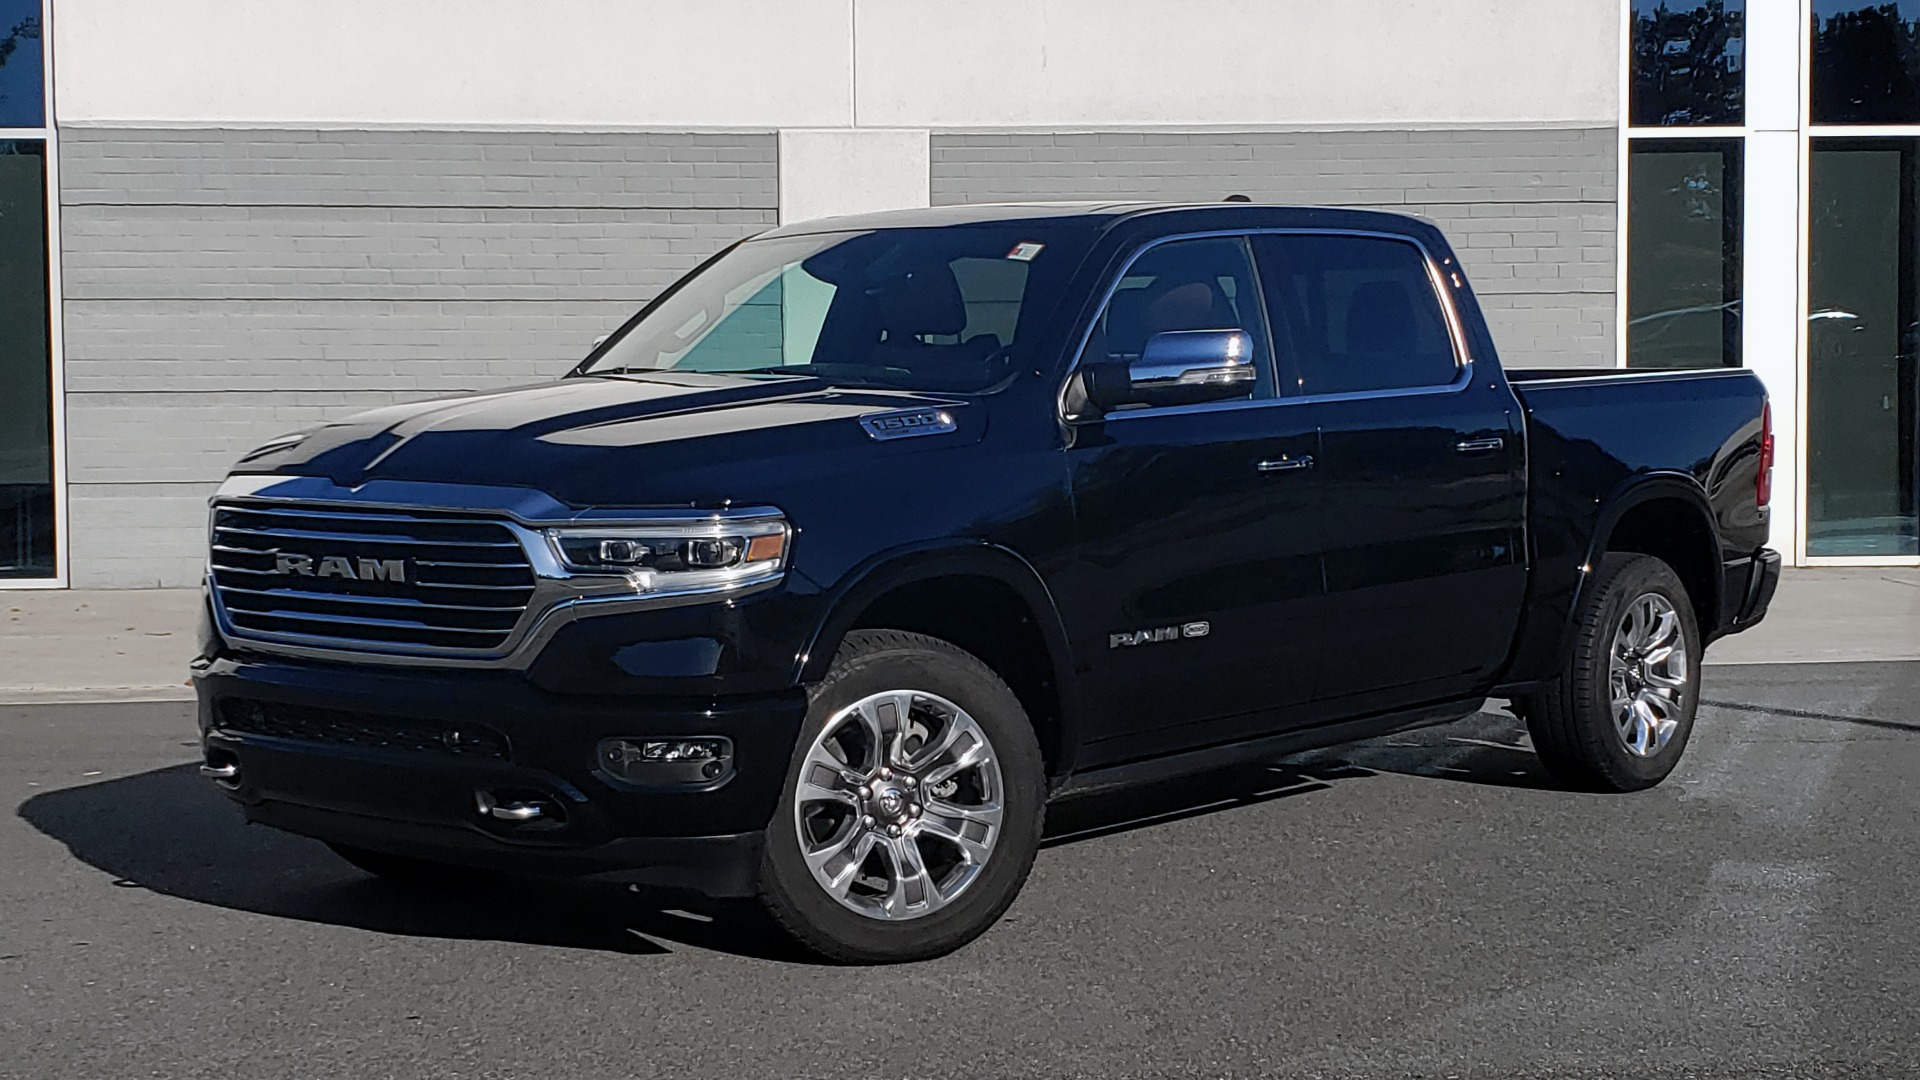 Used 2021 Ram 1500 LONGHORN LIMITED 4X4 / 5.7L HEMI / CREWCAB / H/K SND / PANO-ROOF / REARVIEW for sale $65,999 at Formula Imports in Charlotte NC 28227 1